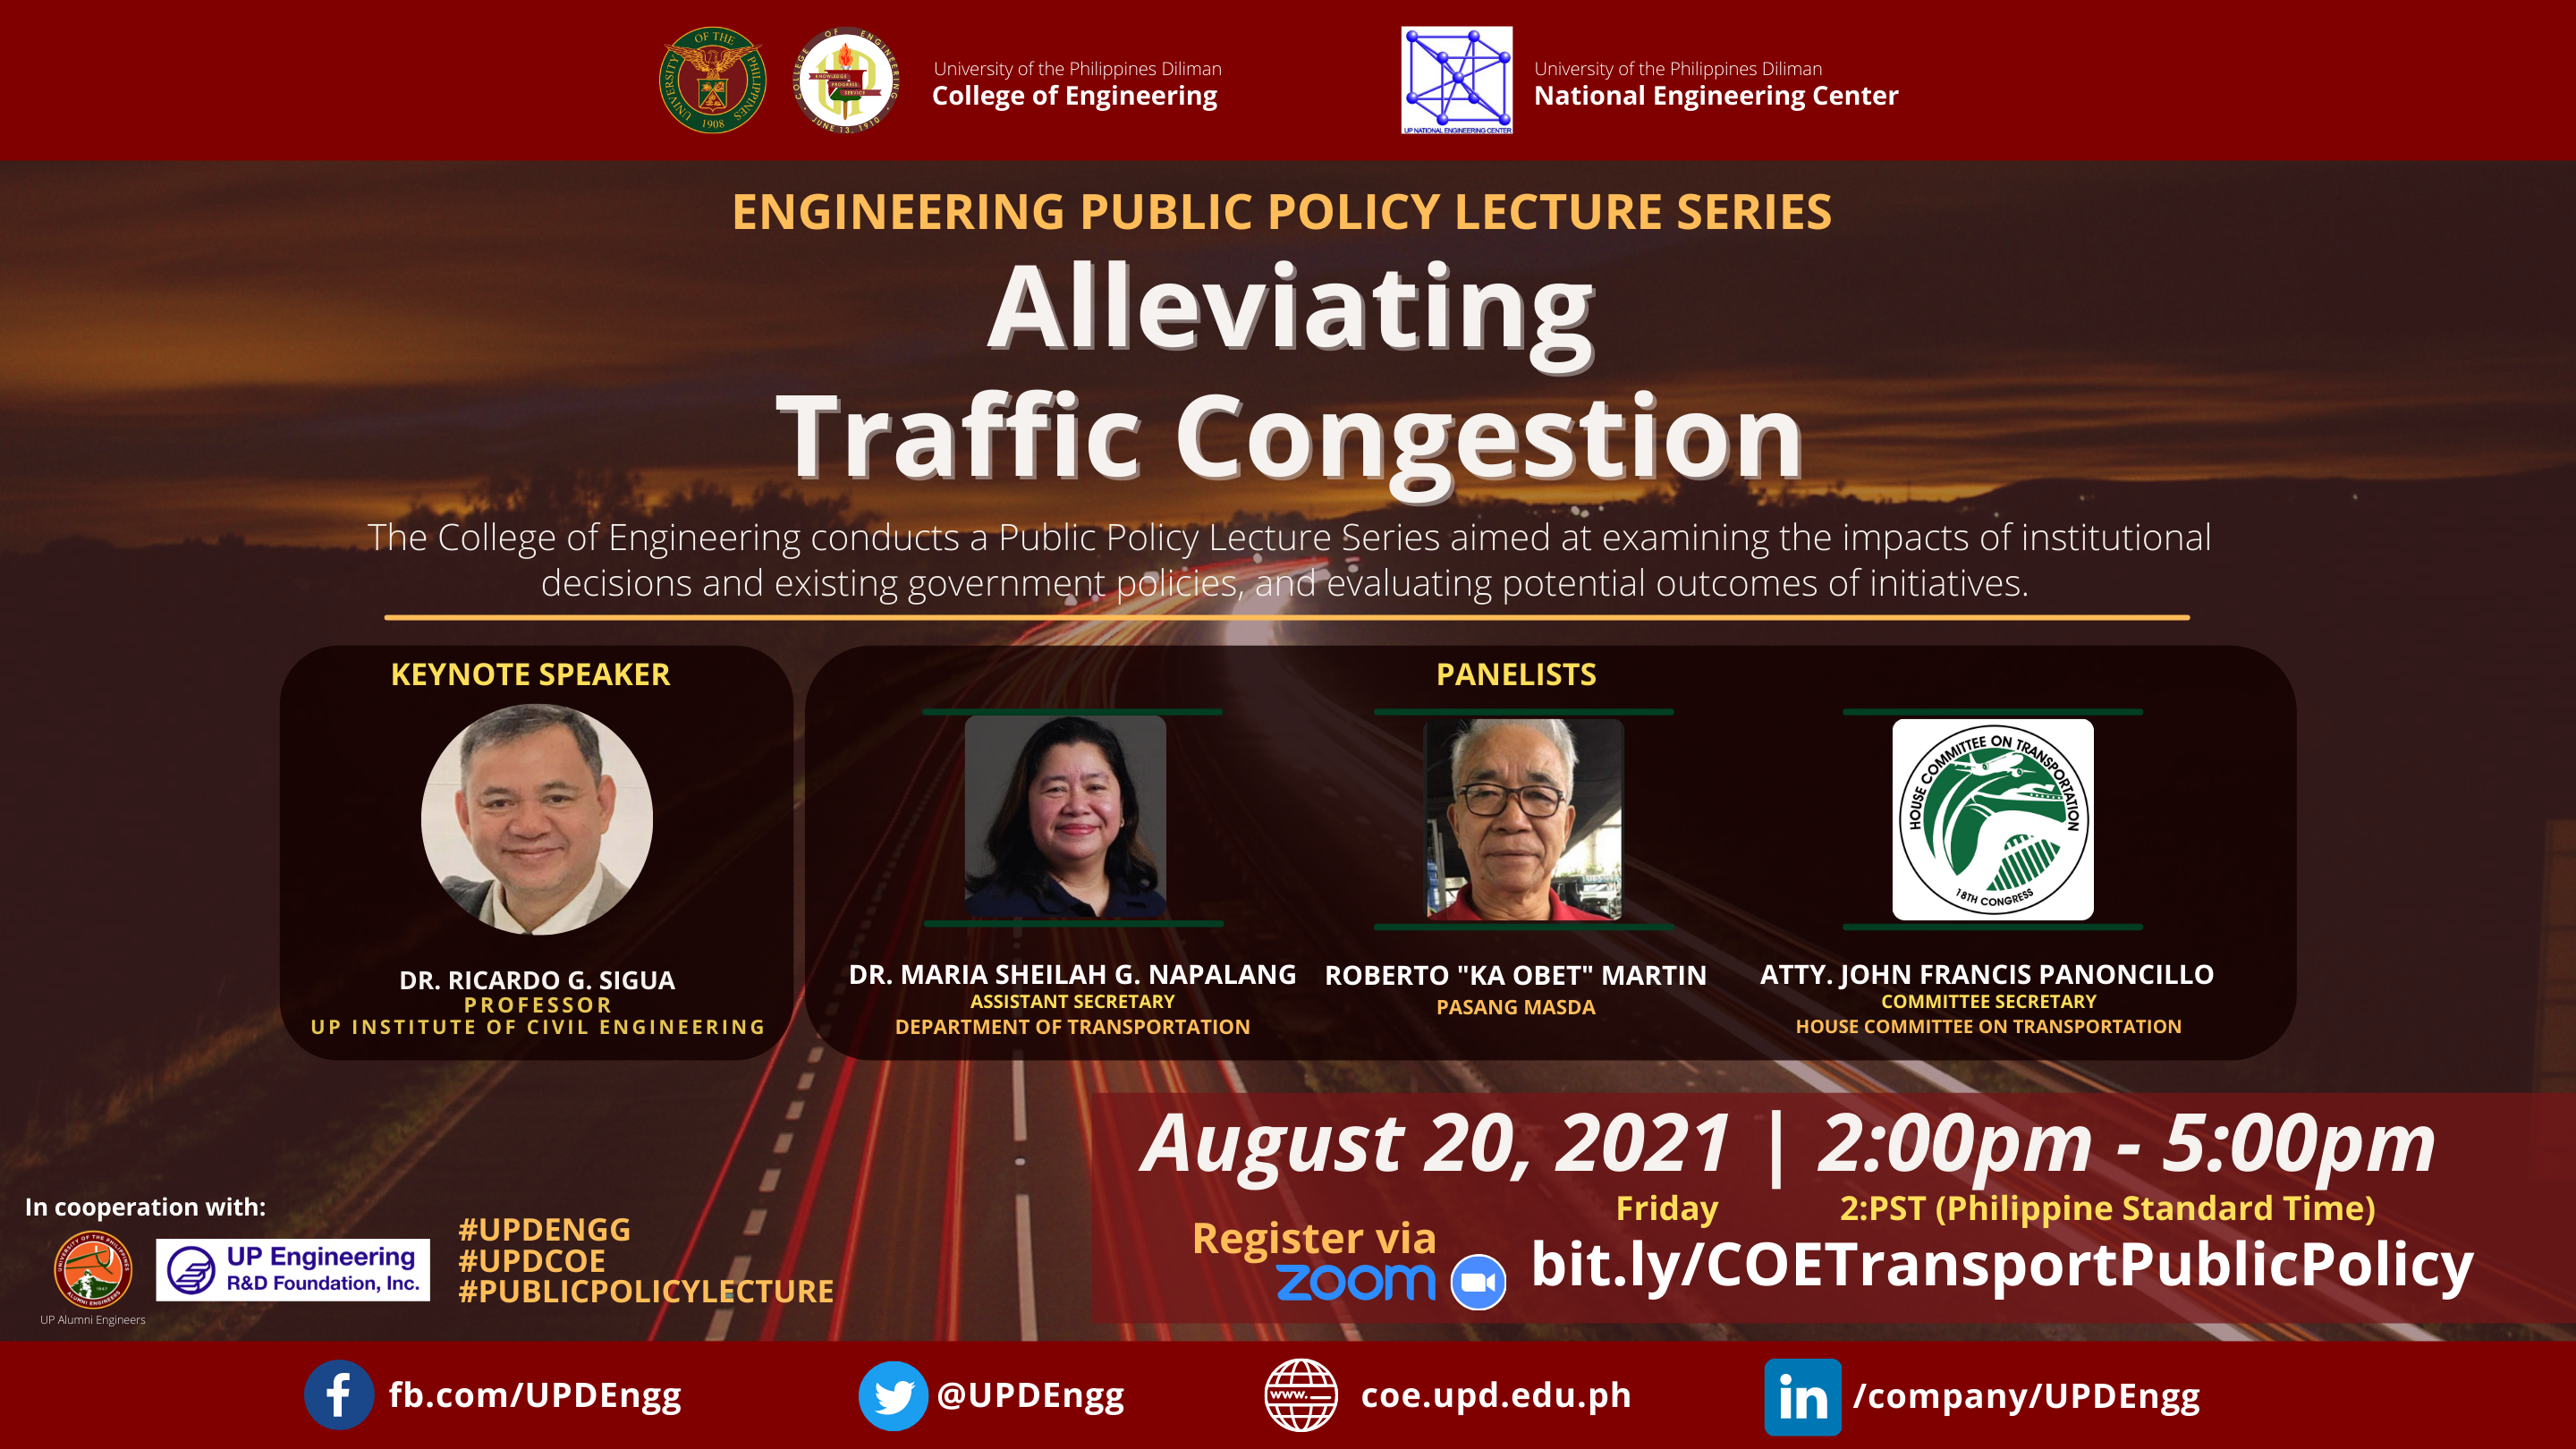 ALLEVIATING TRAFFIC CONGESTION: Engineering Public Policy Lecture Webinar Series